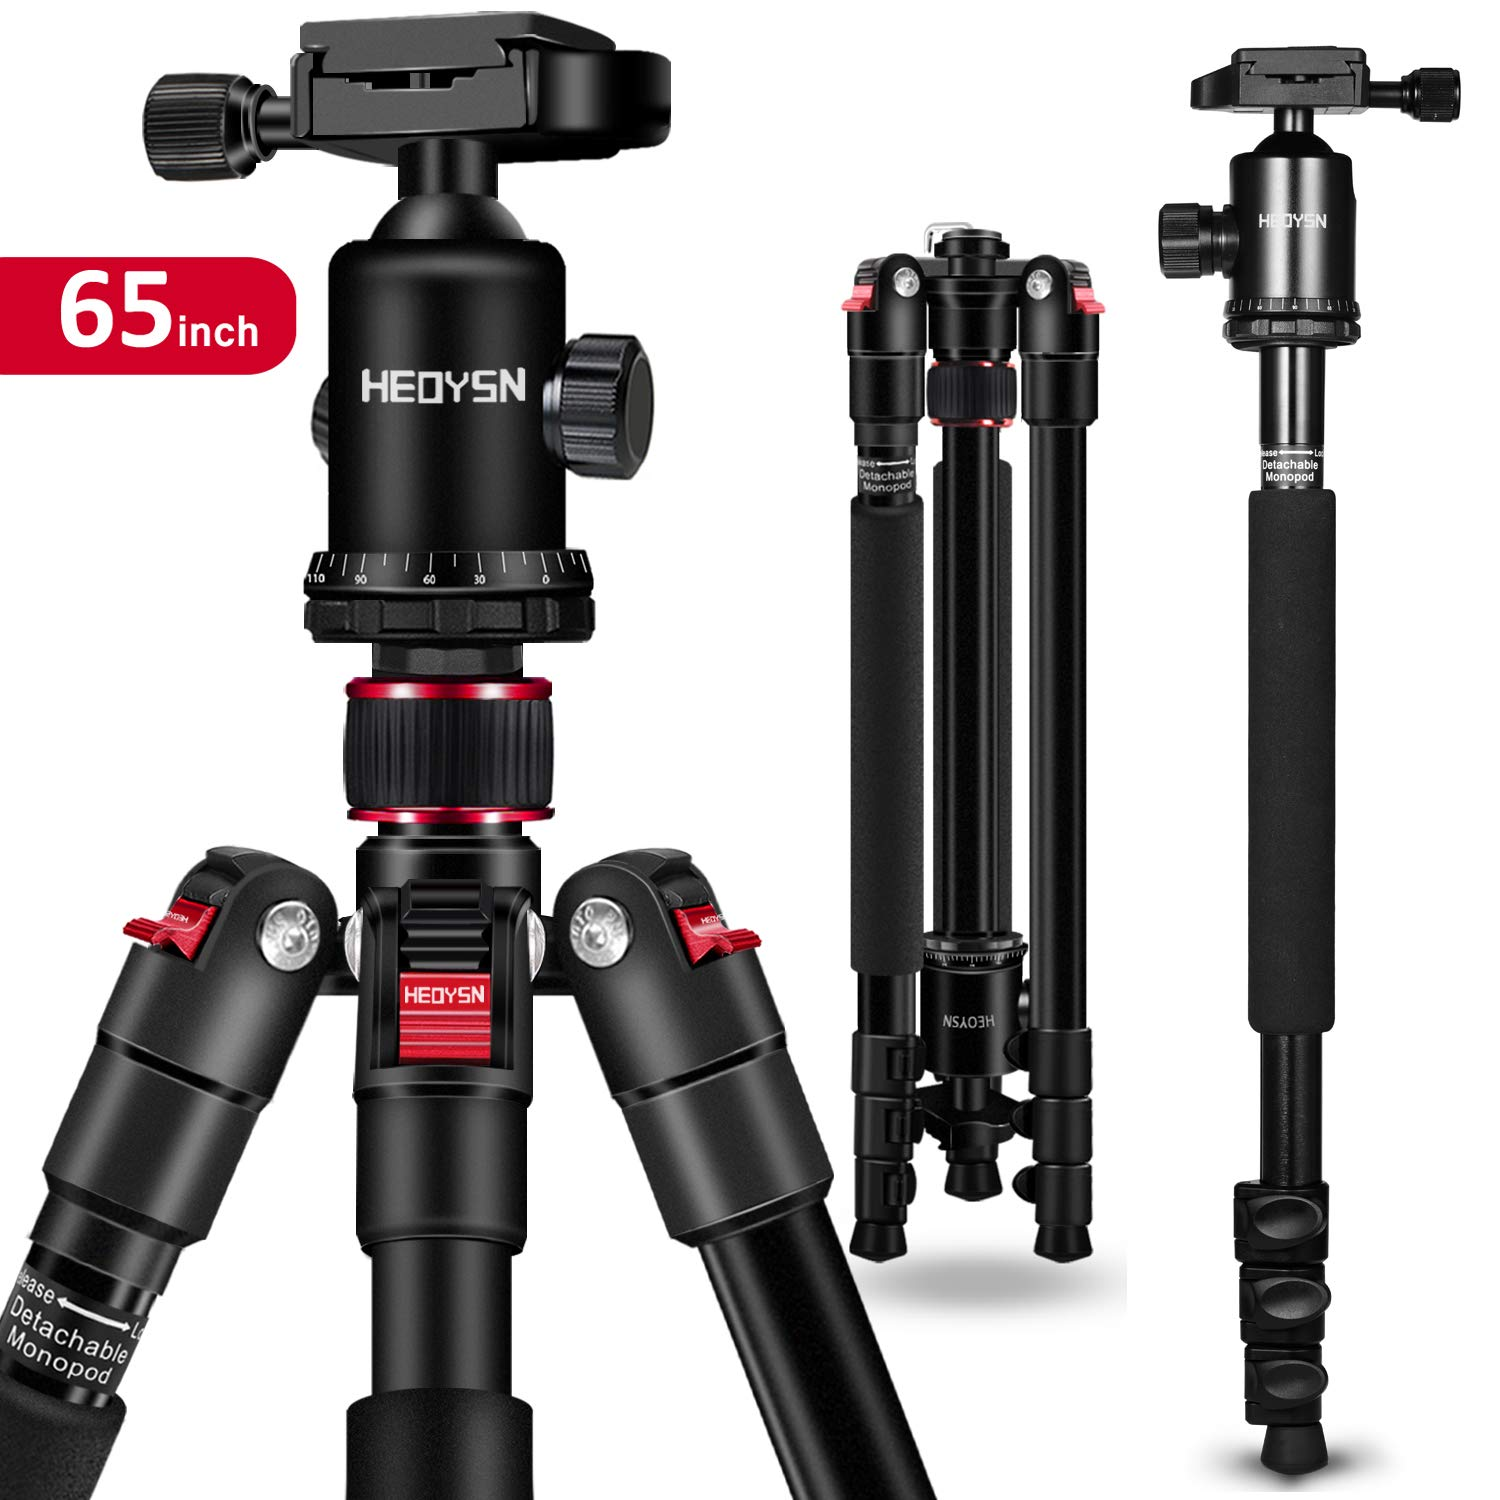 65'' DSLR Camera Tripod,HEOYSN Lightweight and Compact Aluminum Alloy Travel Tripod with 360 Degree Panorama Ball Head Quick Release Plate Detachable Monopod with Carry Bag for Travel & Work